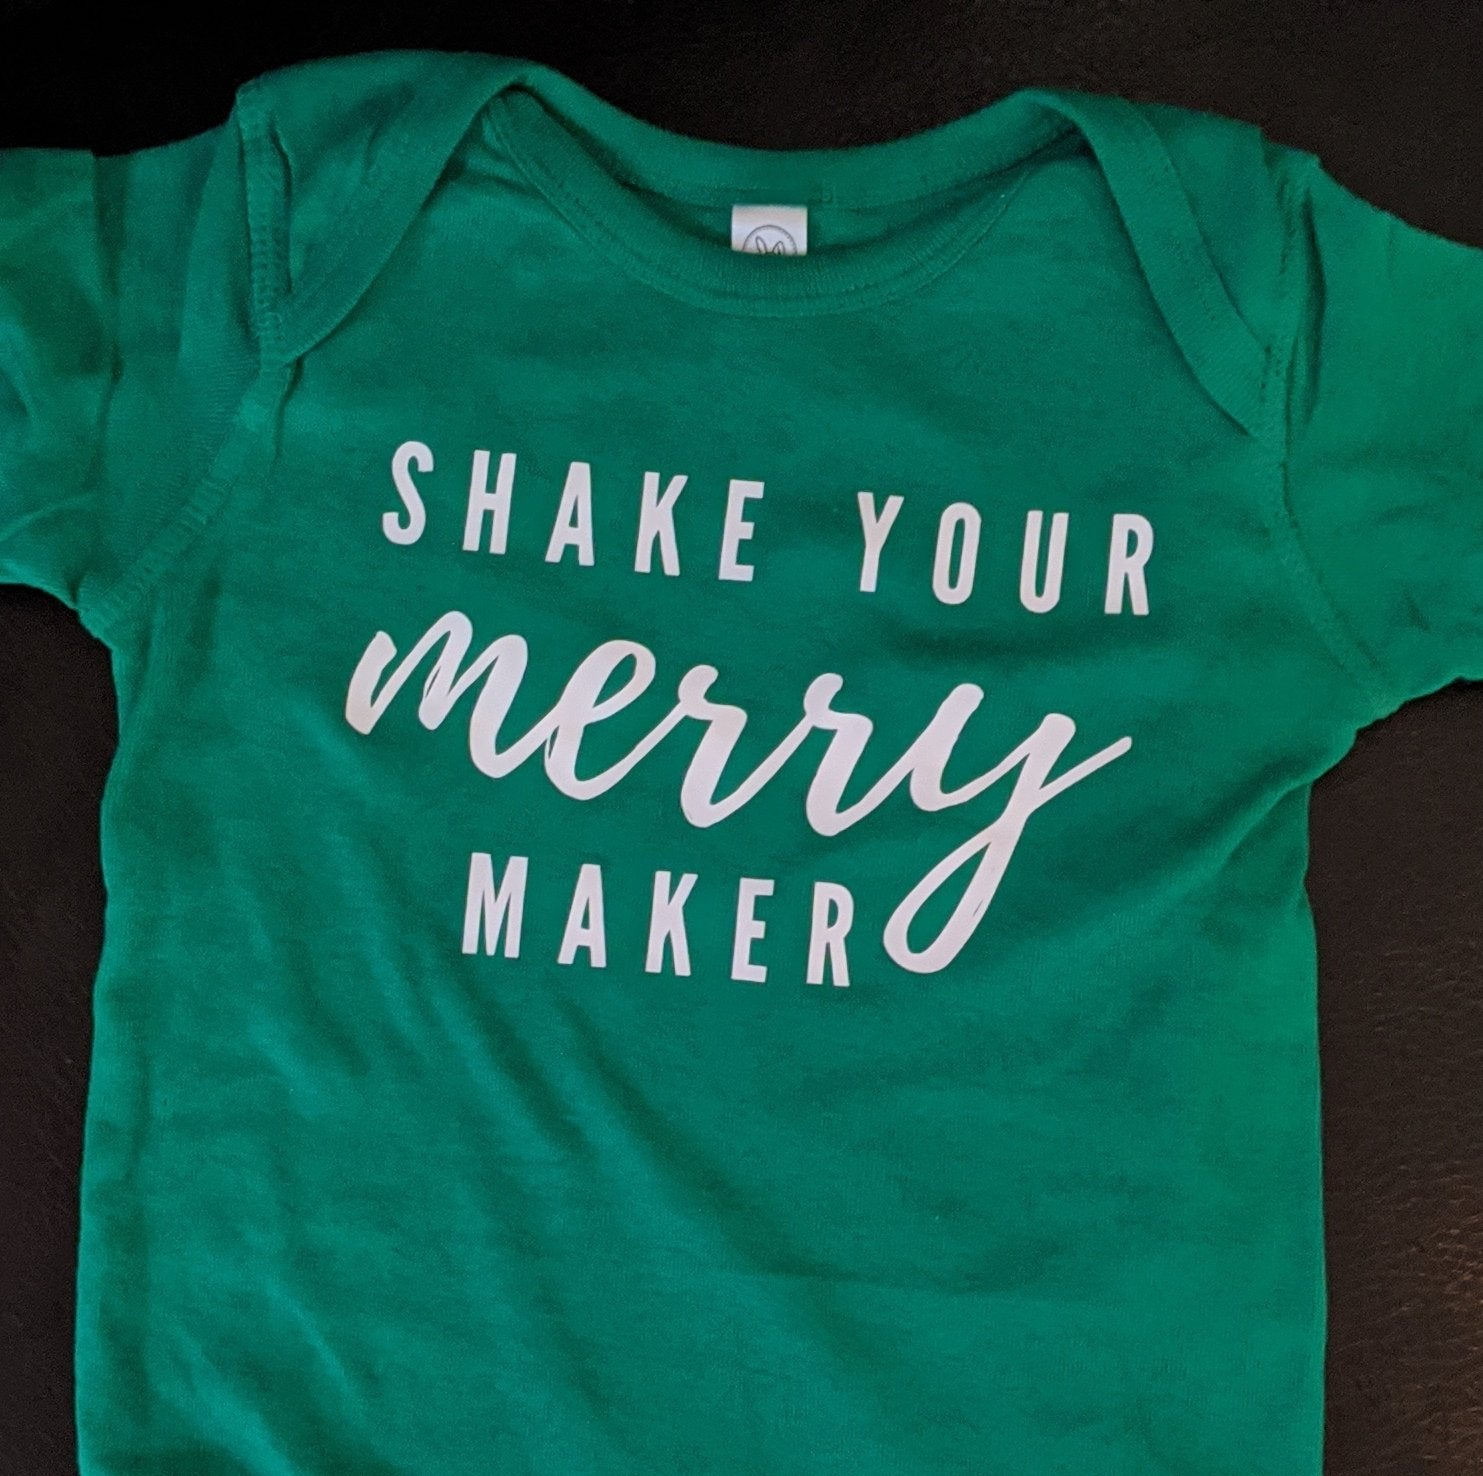 Shake Your Merry Maker - children & adult